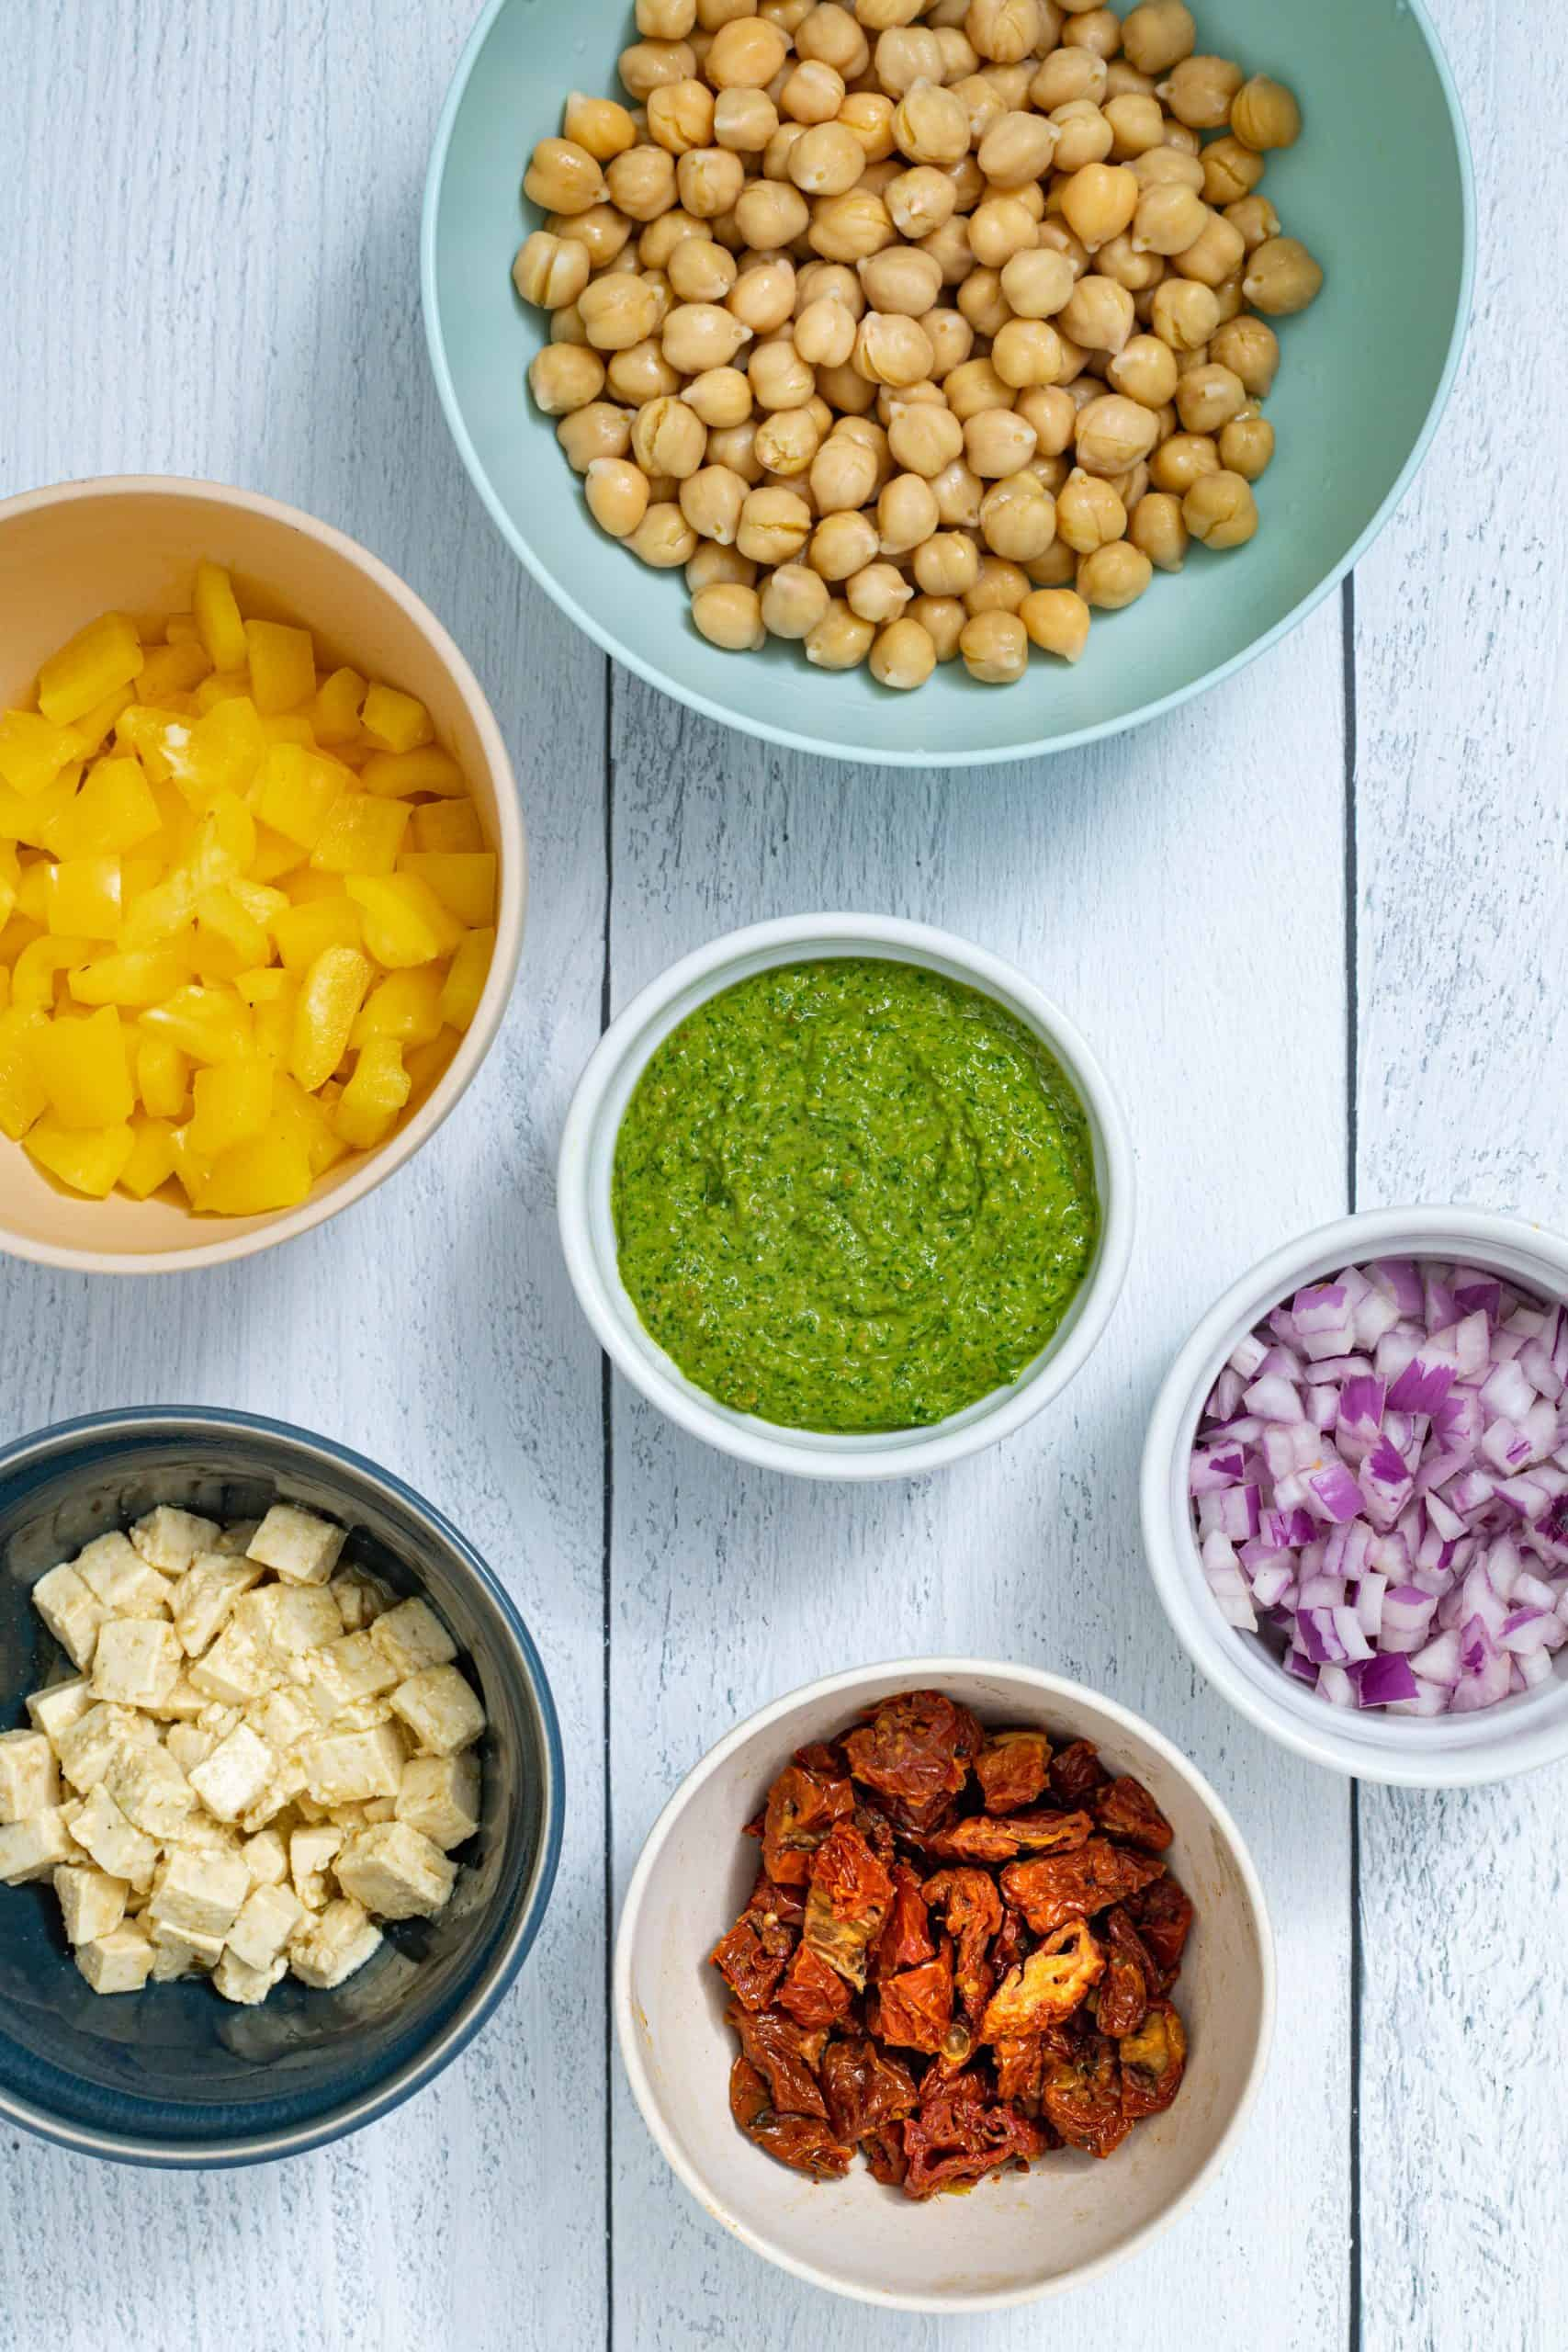 the ingredients for making pasta salad